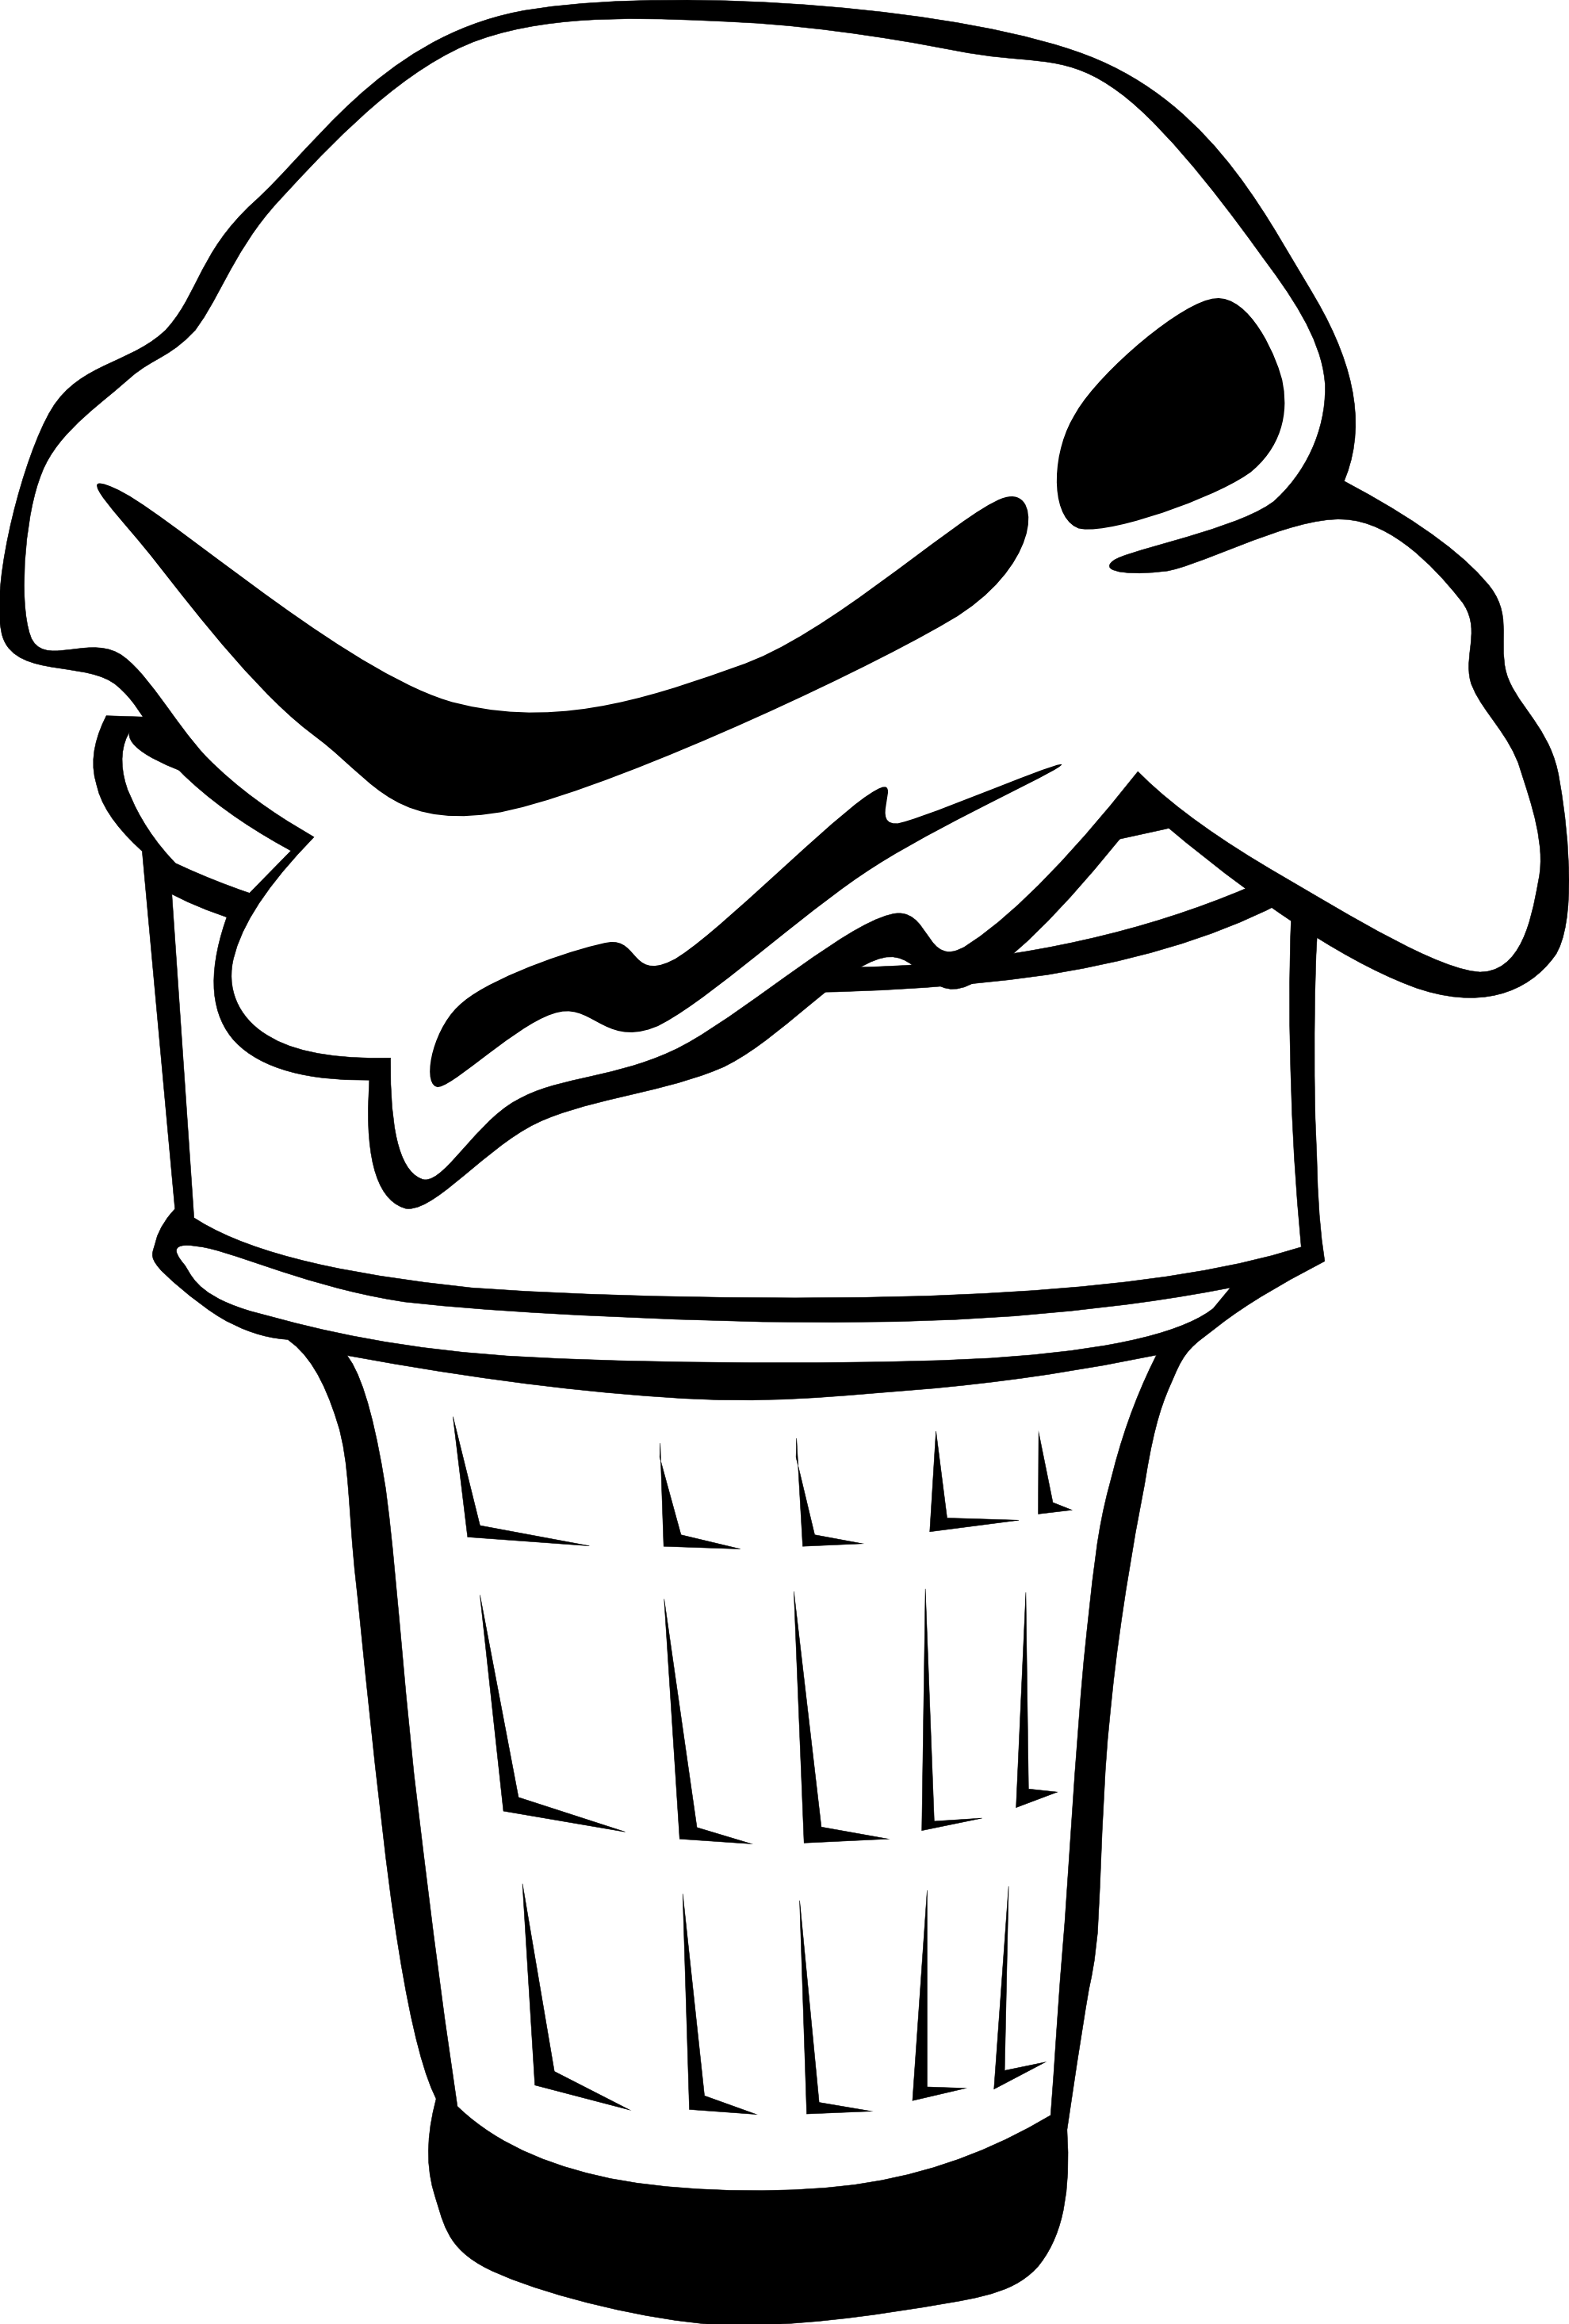 ice cream scoop black and white clipart - photo #30